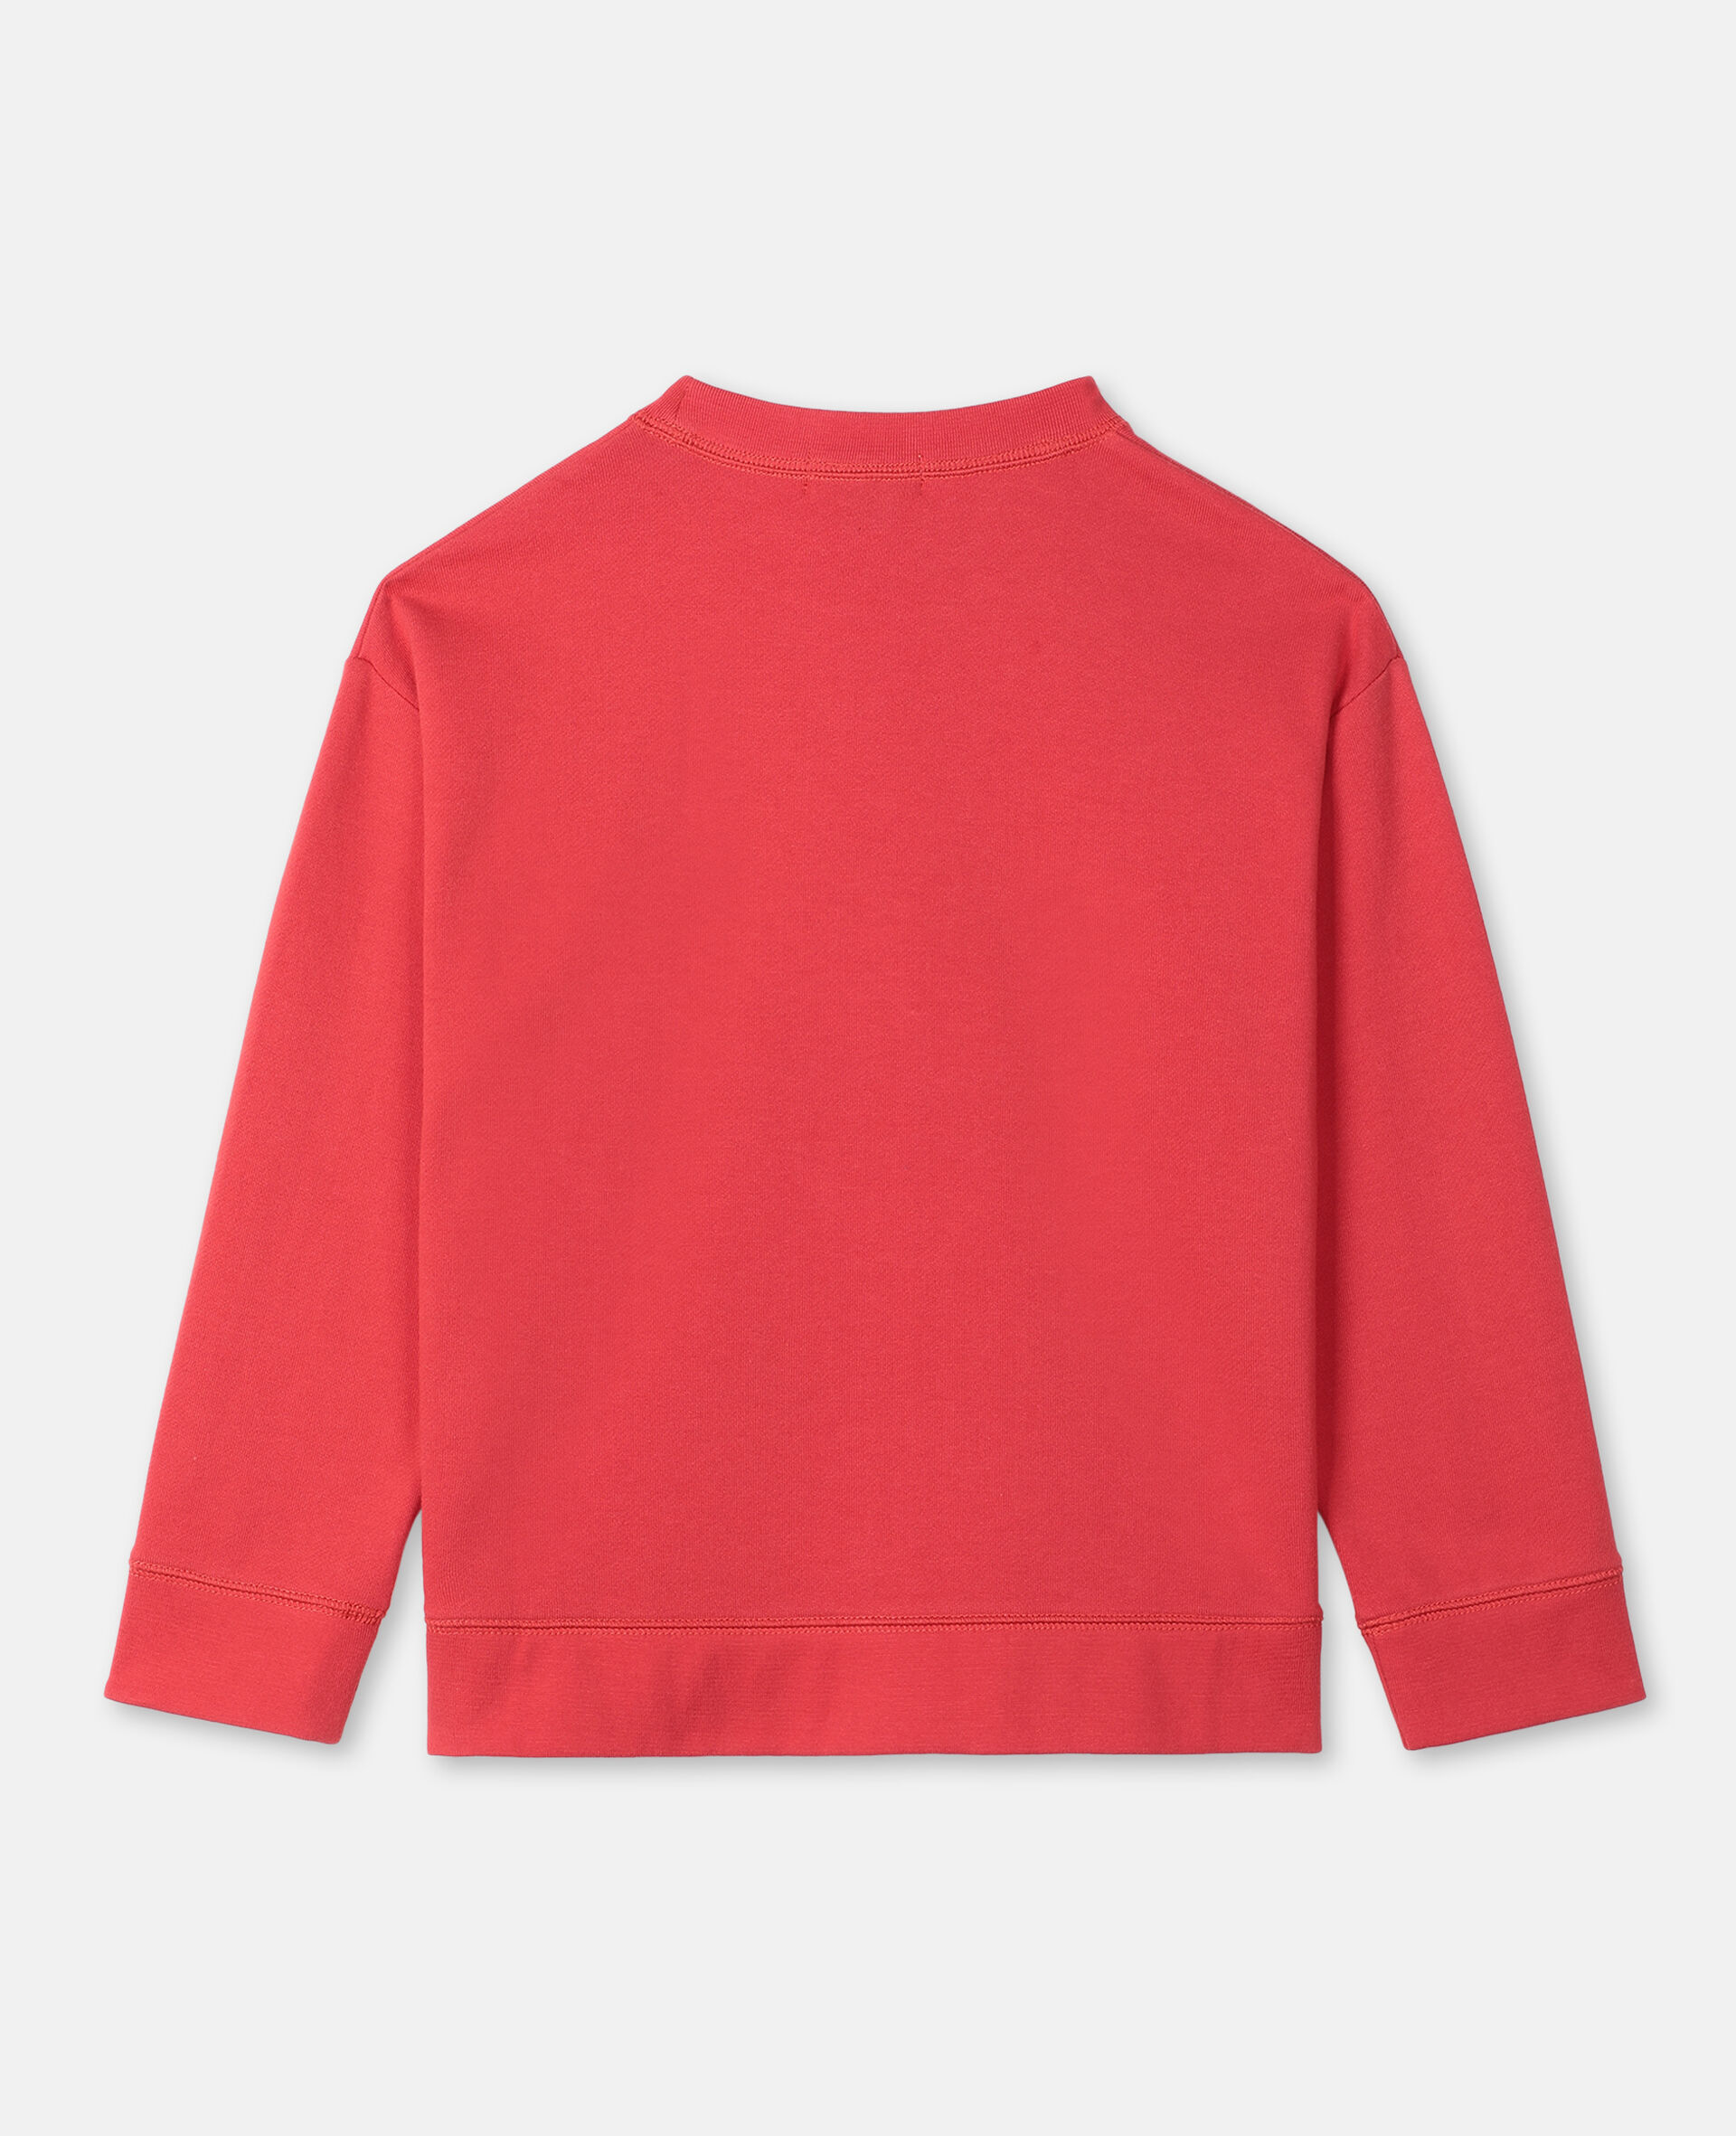 Oversize Logo Sailing Cotton Sweatshirt -Red-large image number 3